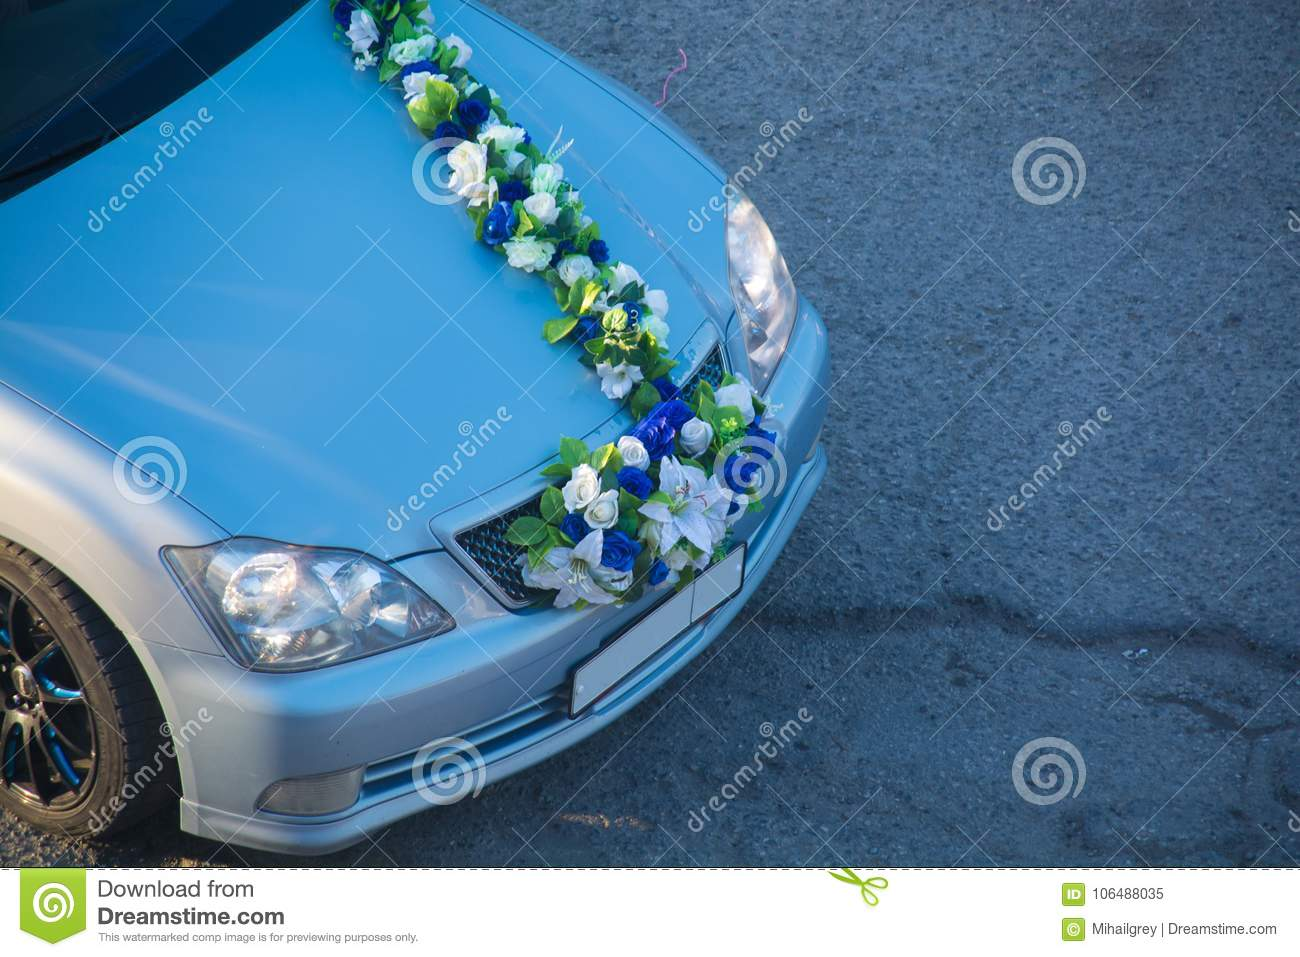 Wedding Decorations For Car Flowers White Flowers Stock Image